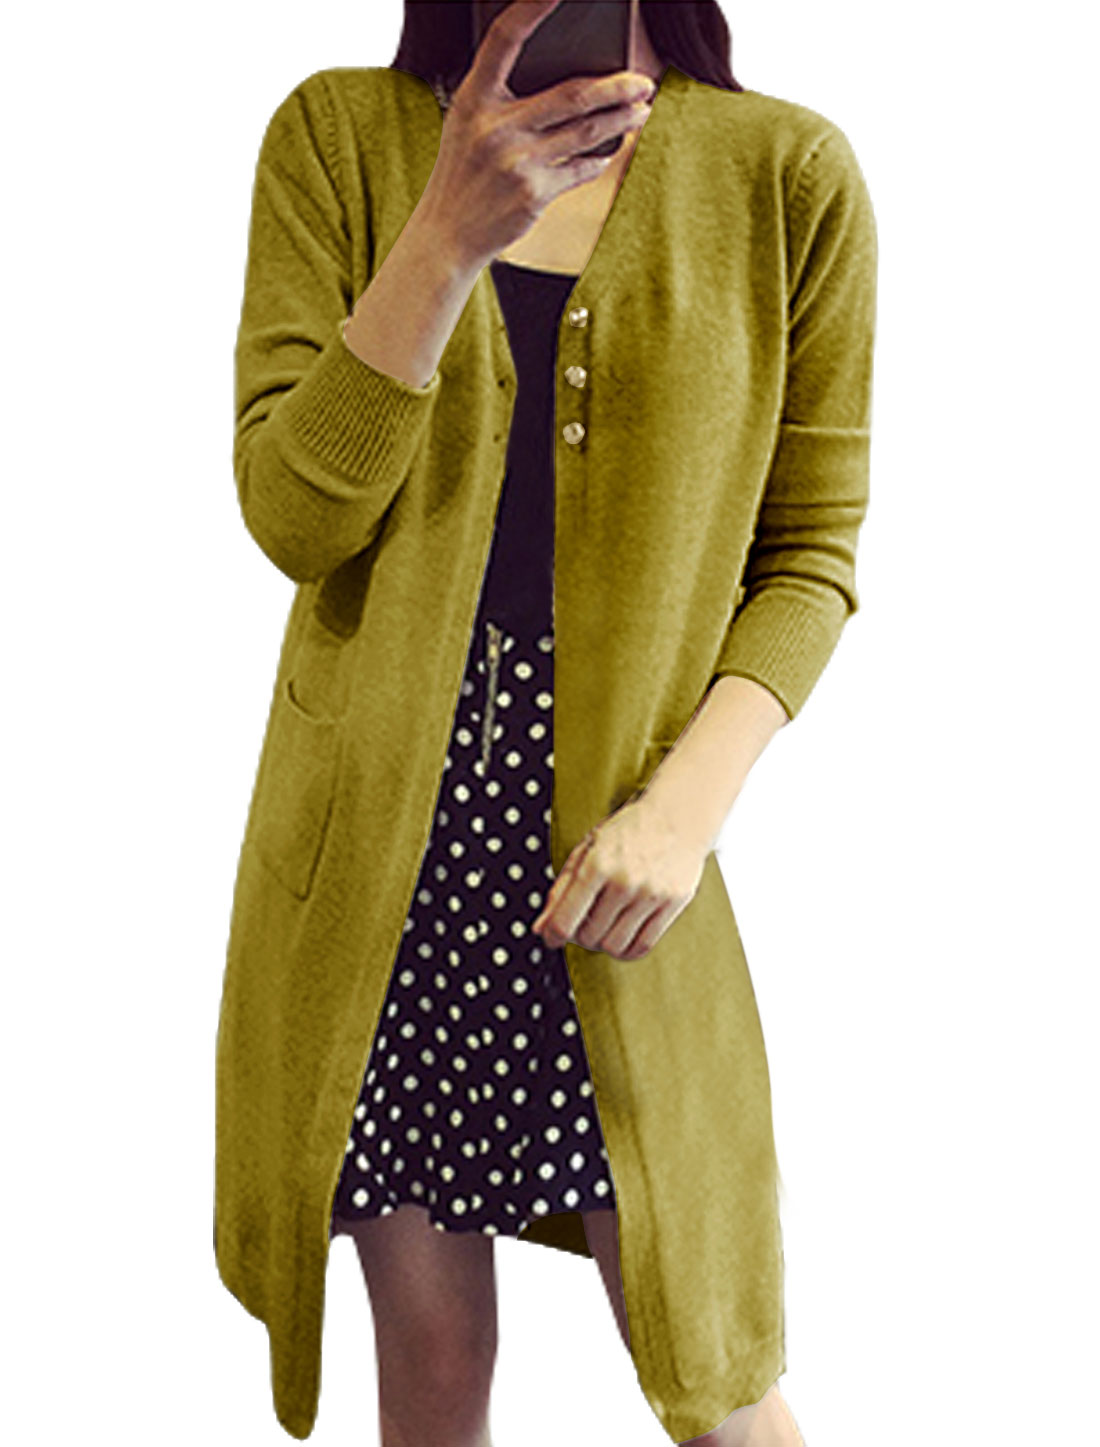 Women Two Pockets Front Single Breasted Long Knit Cardigan Olive S